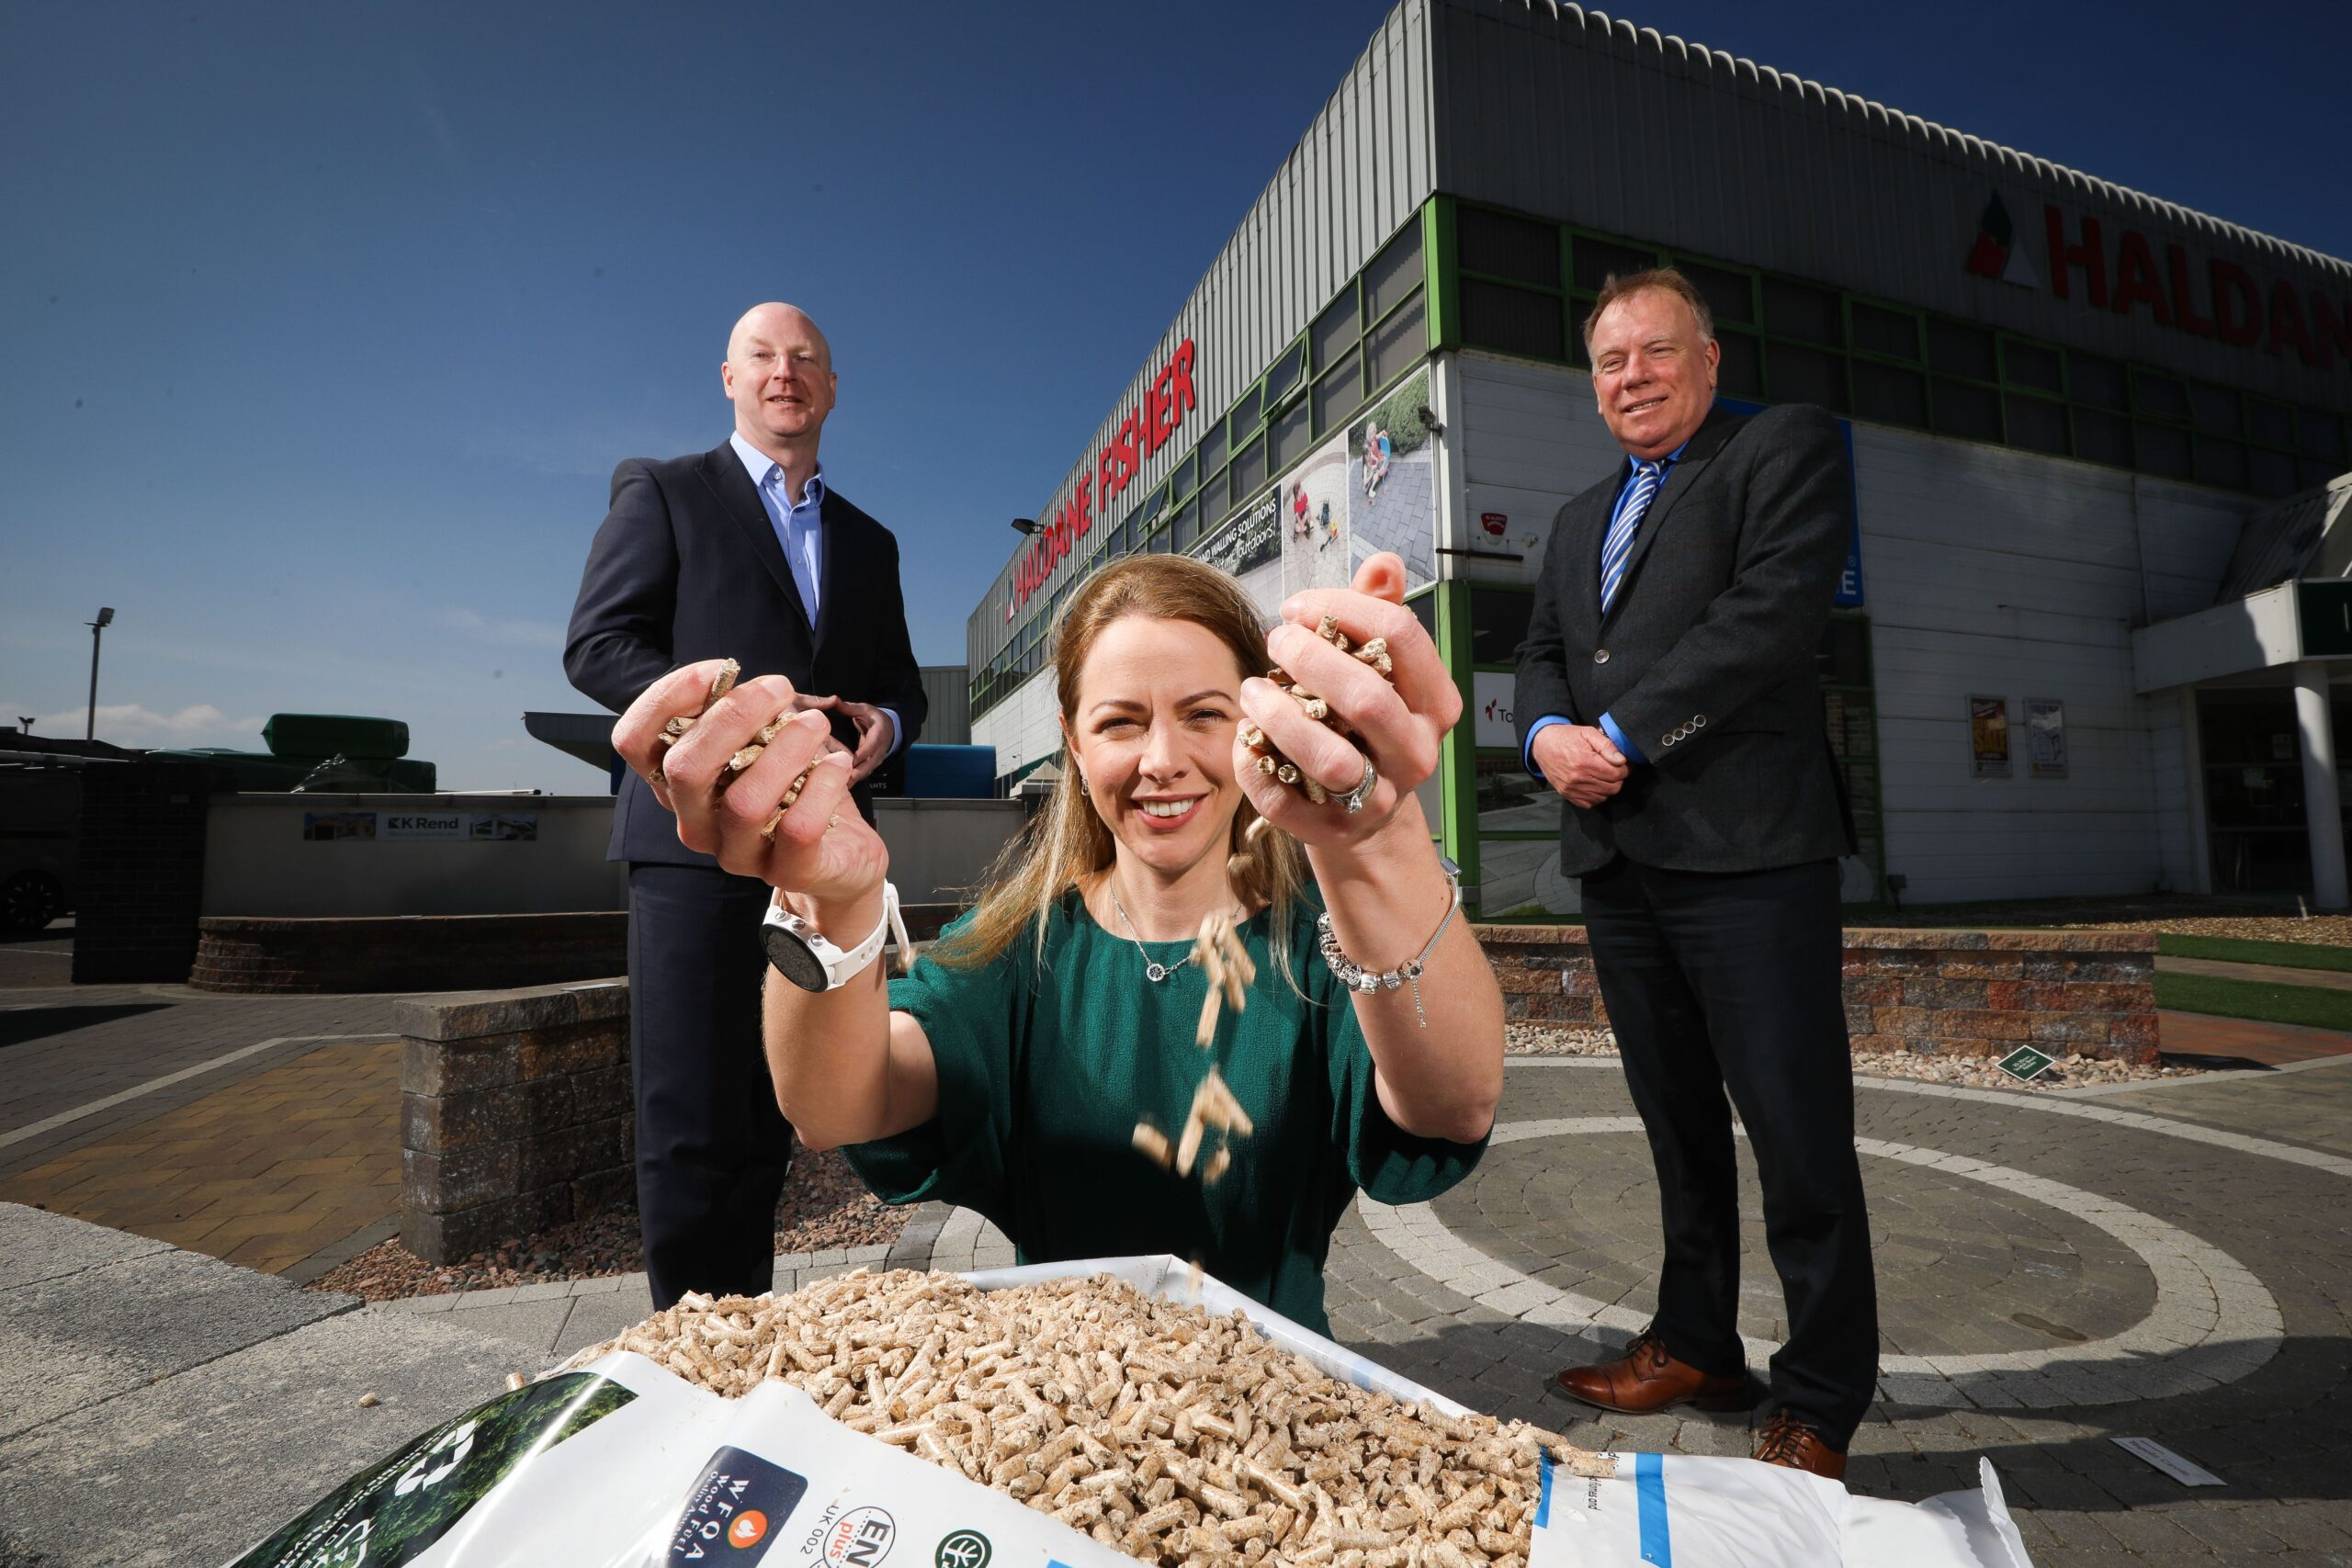 Danske Bank and BITC launch scheme to help NI companies get 'climate literate'  Newry Times - Newry business news